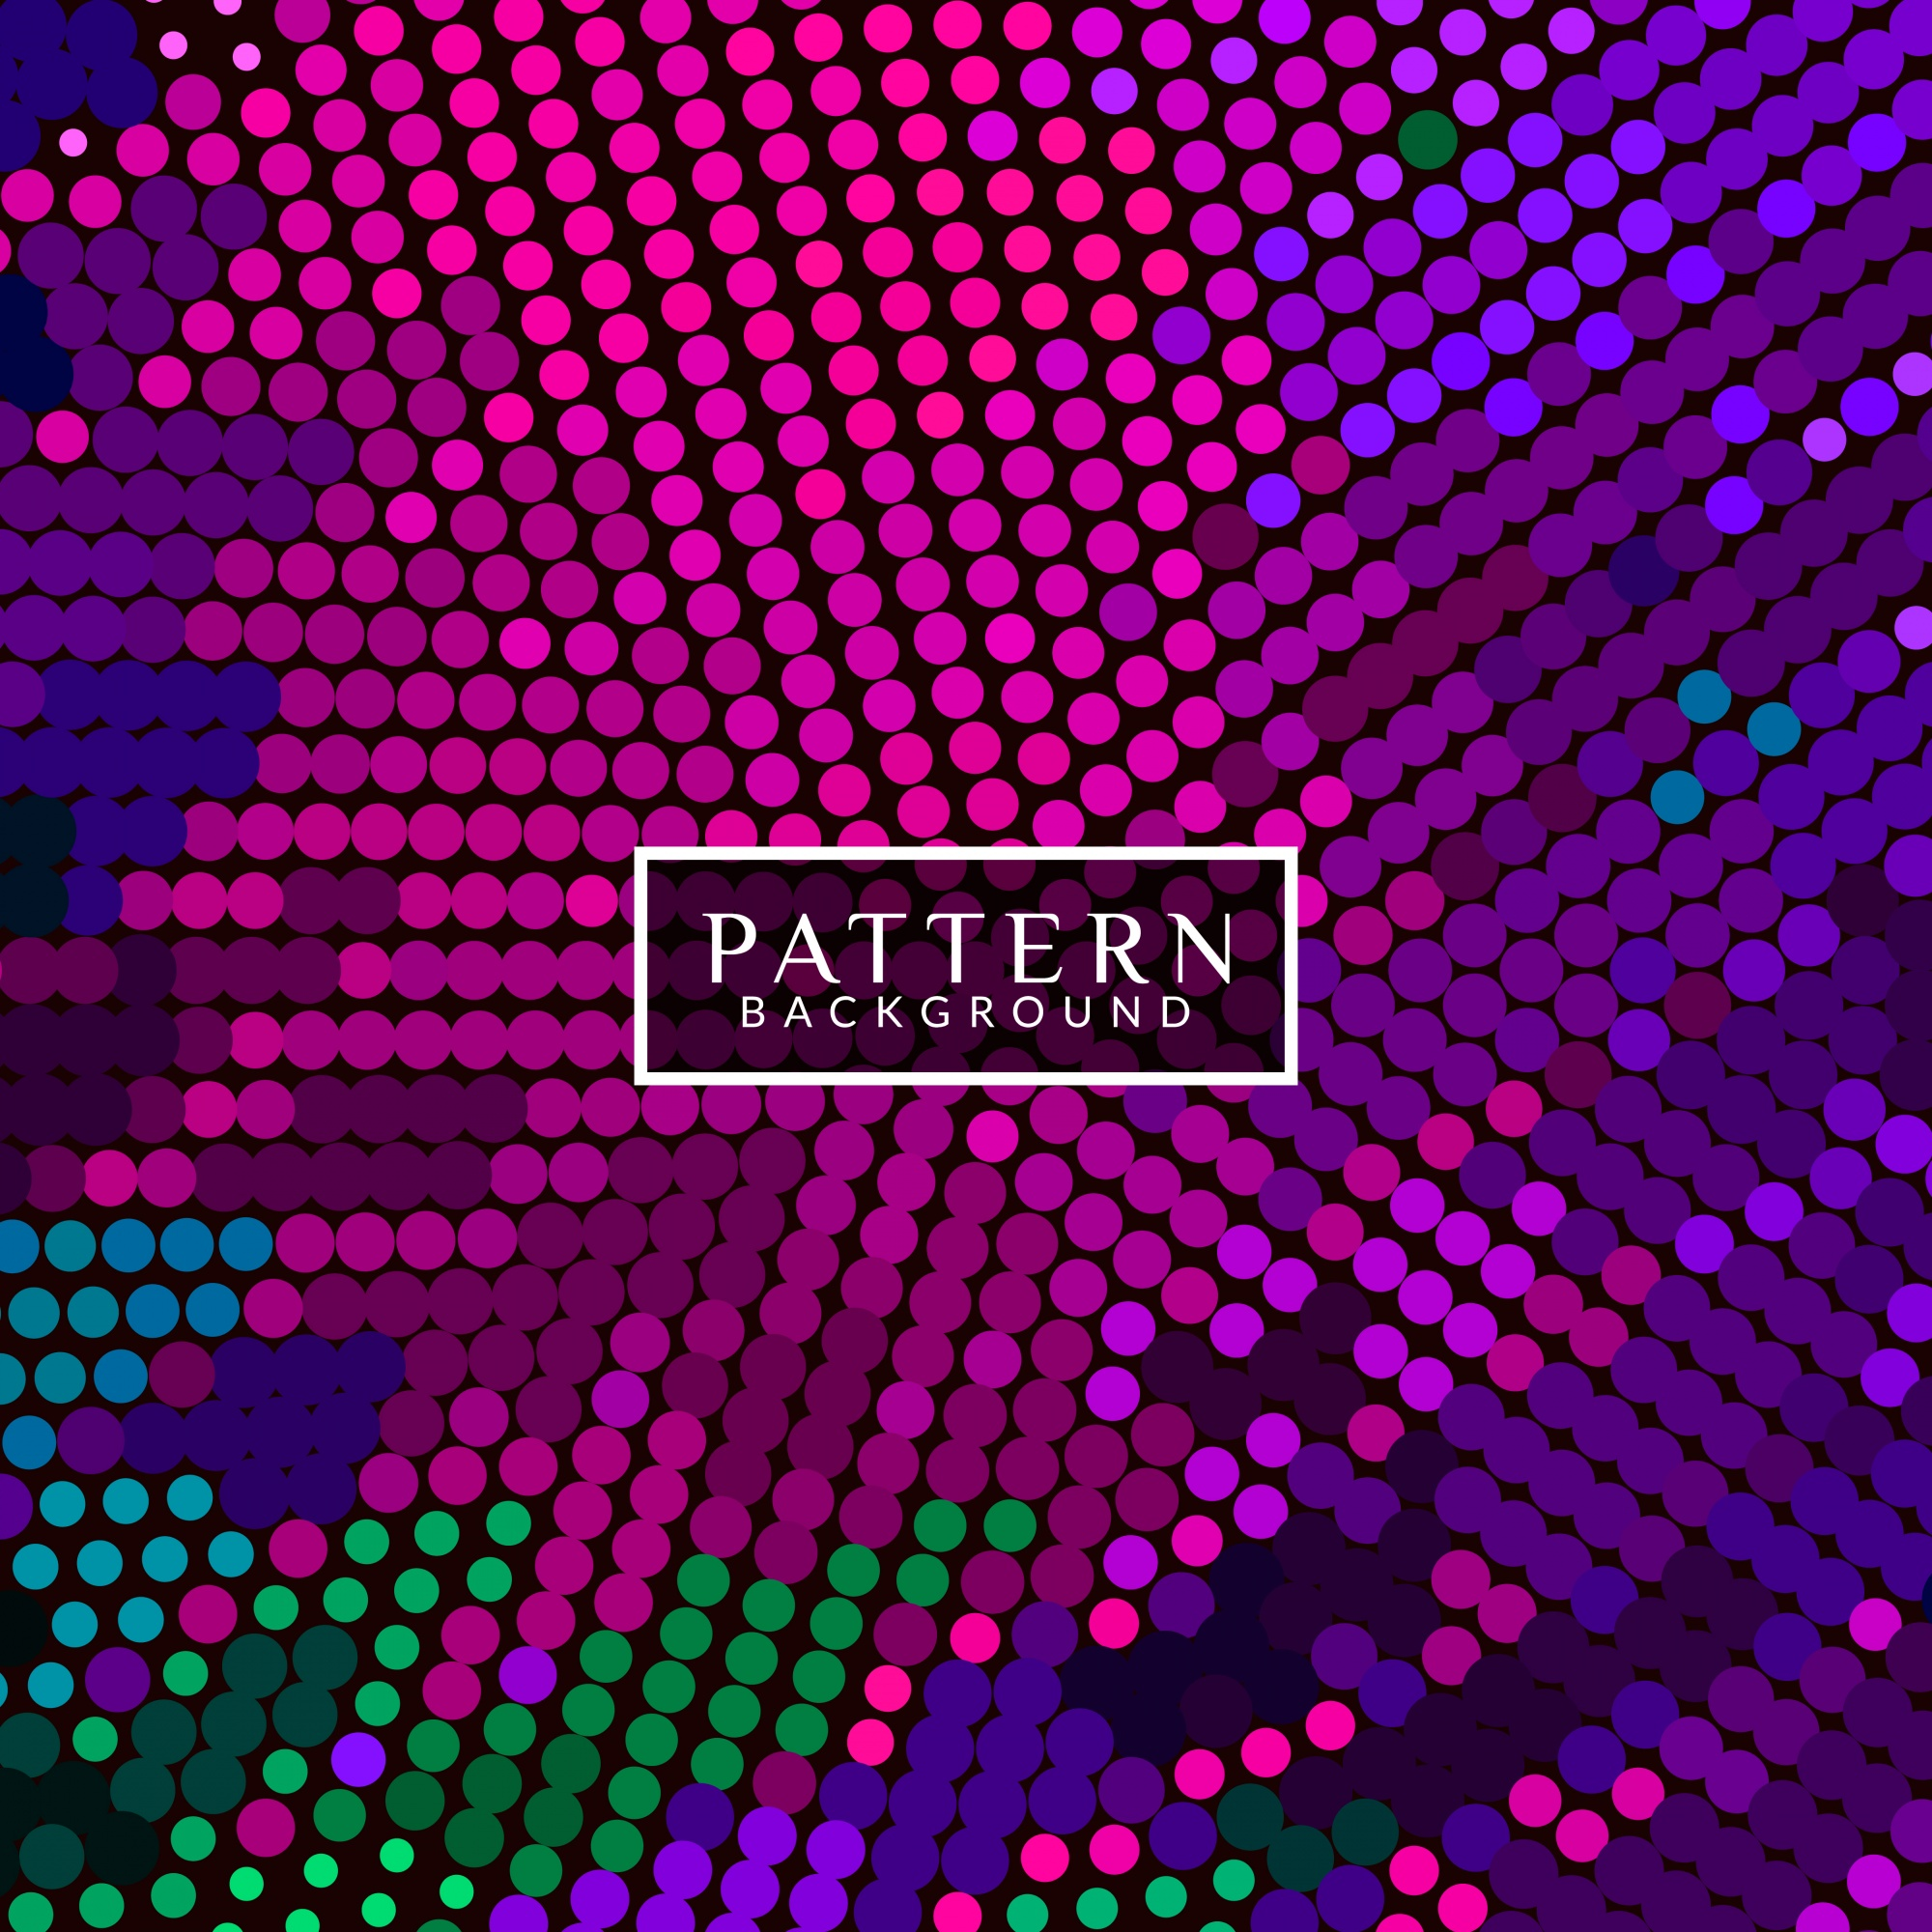 Modern abstract background with halftone dots